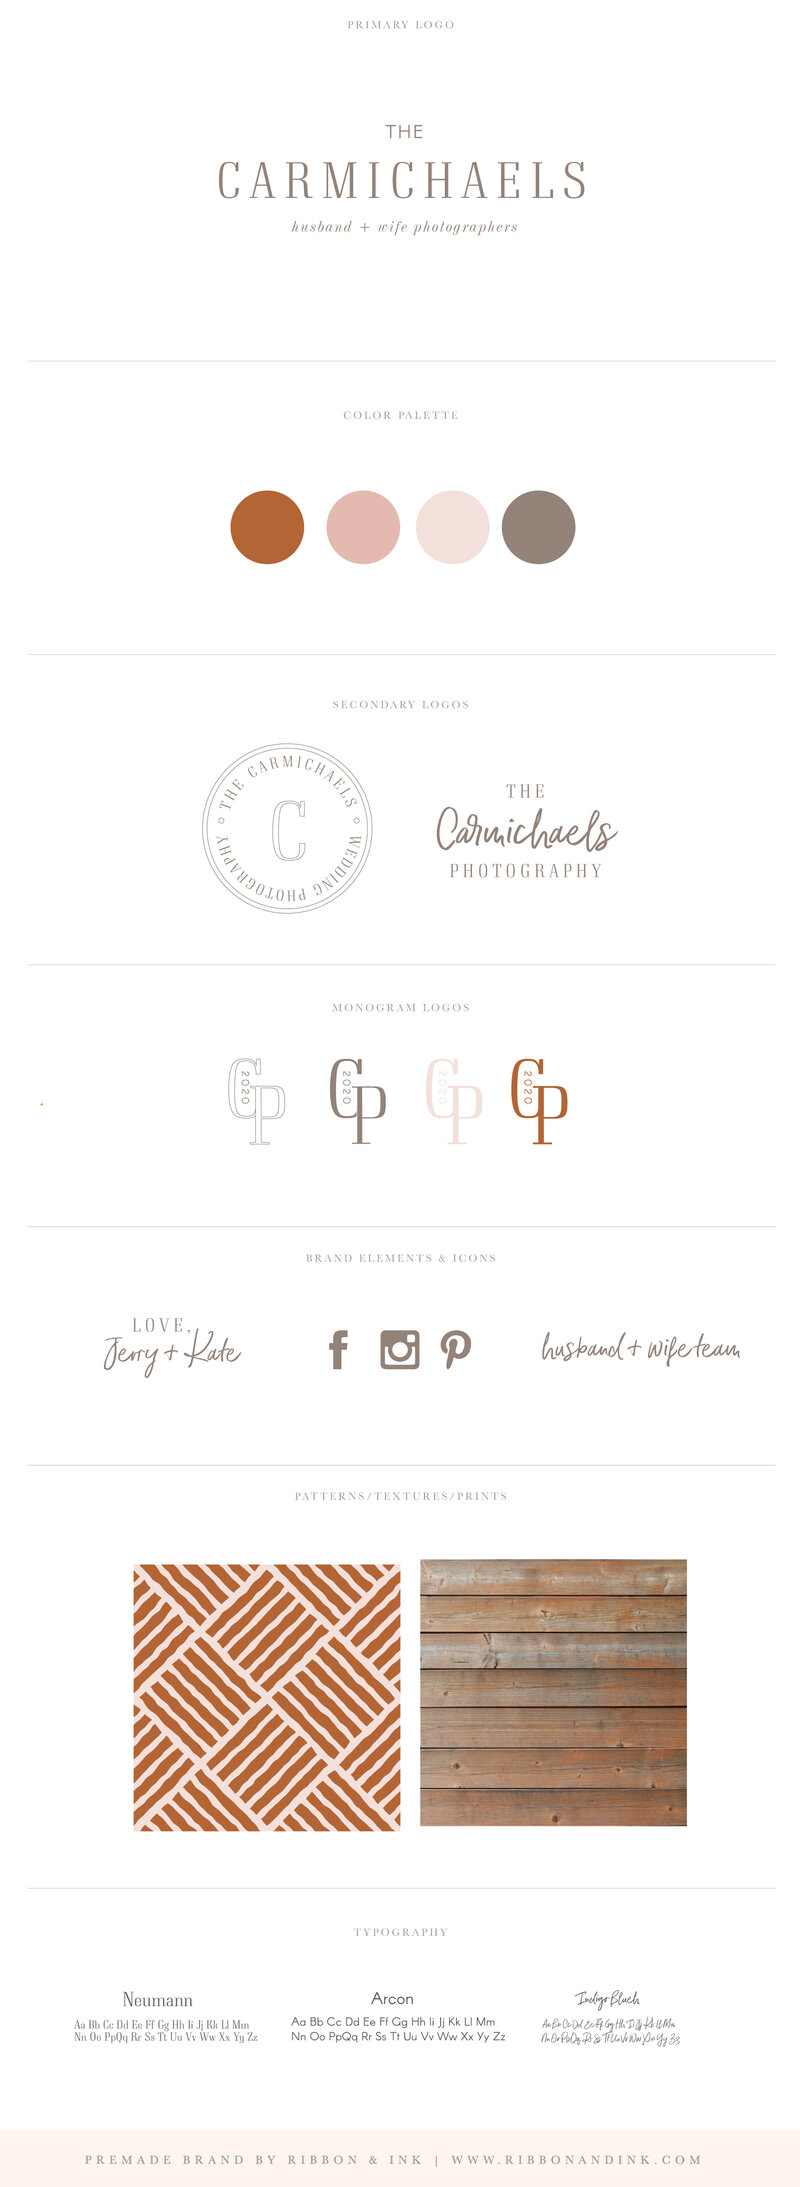 branding-for-creatives-husband-wife-photographer-photography-wedding-brown-neutral-tan-modern-brand-board-identity-Carmichael_BrandBoard_v01